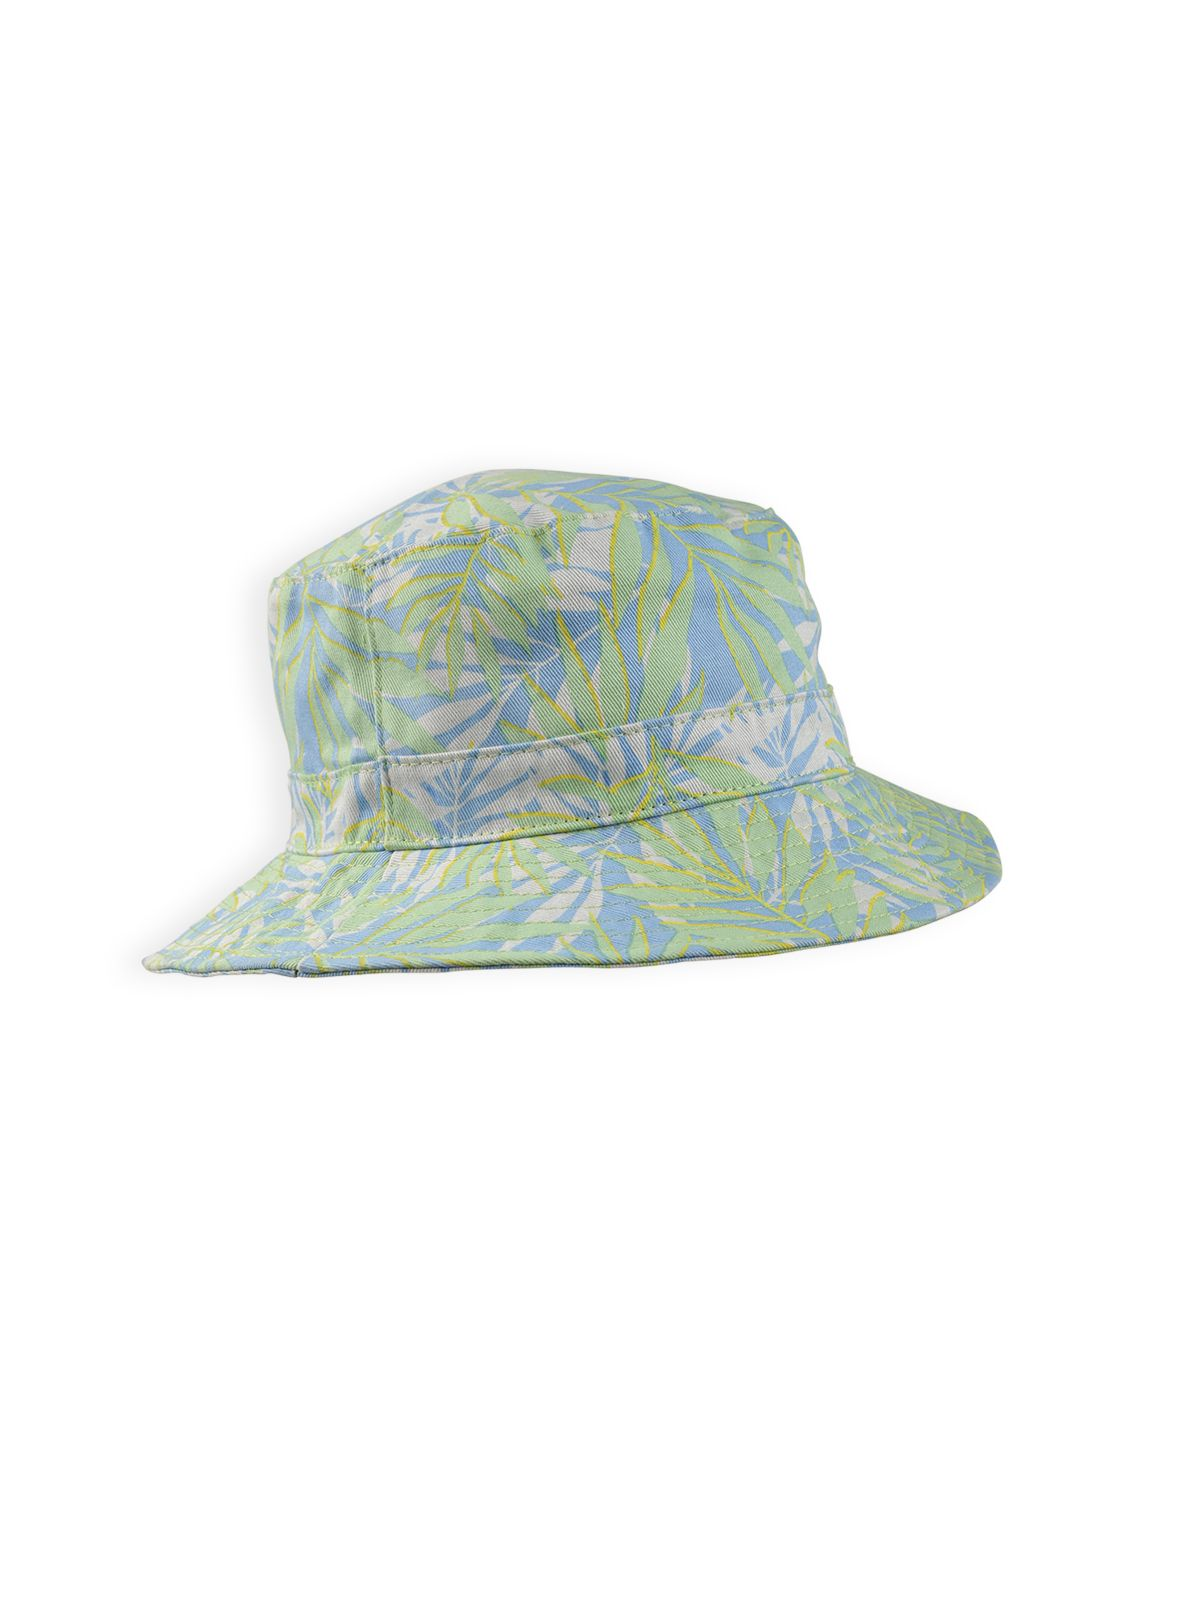 Boys congo leaves printed hat